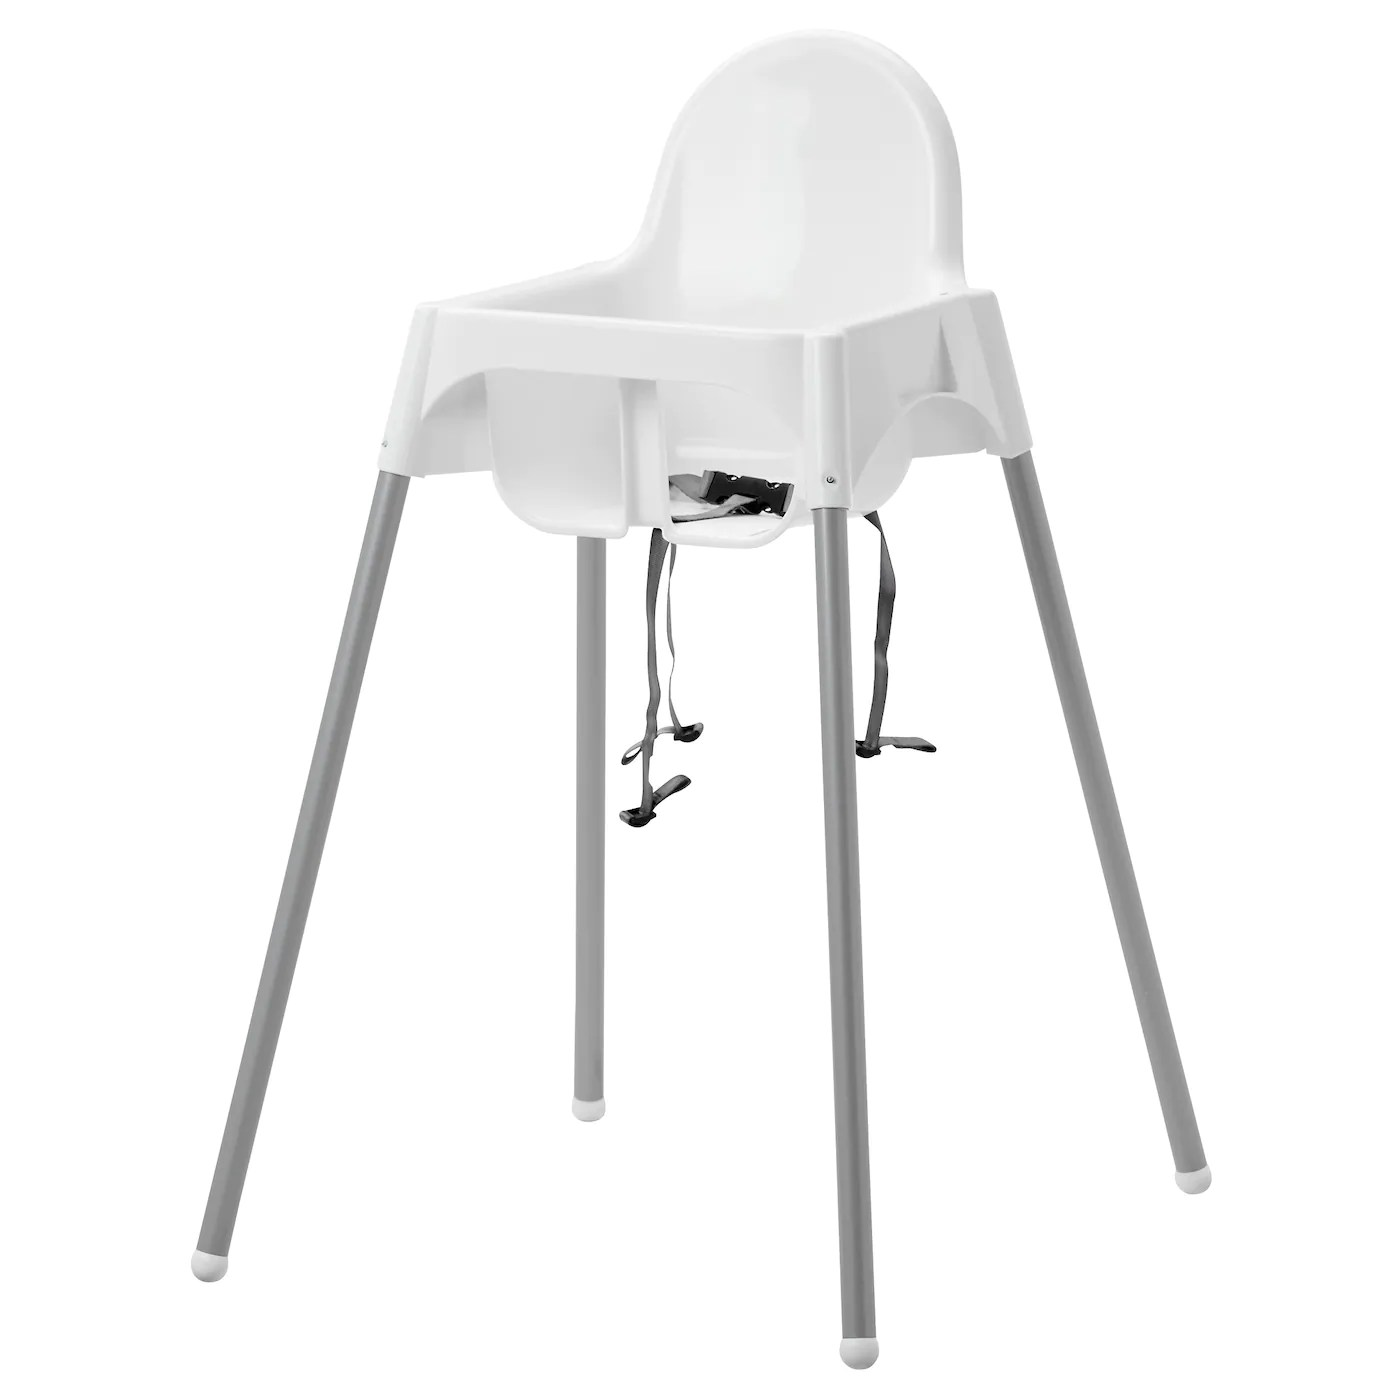 White Chair Ikea Antilop Highchair With Safety Belt White Silver Colour Ikea